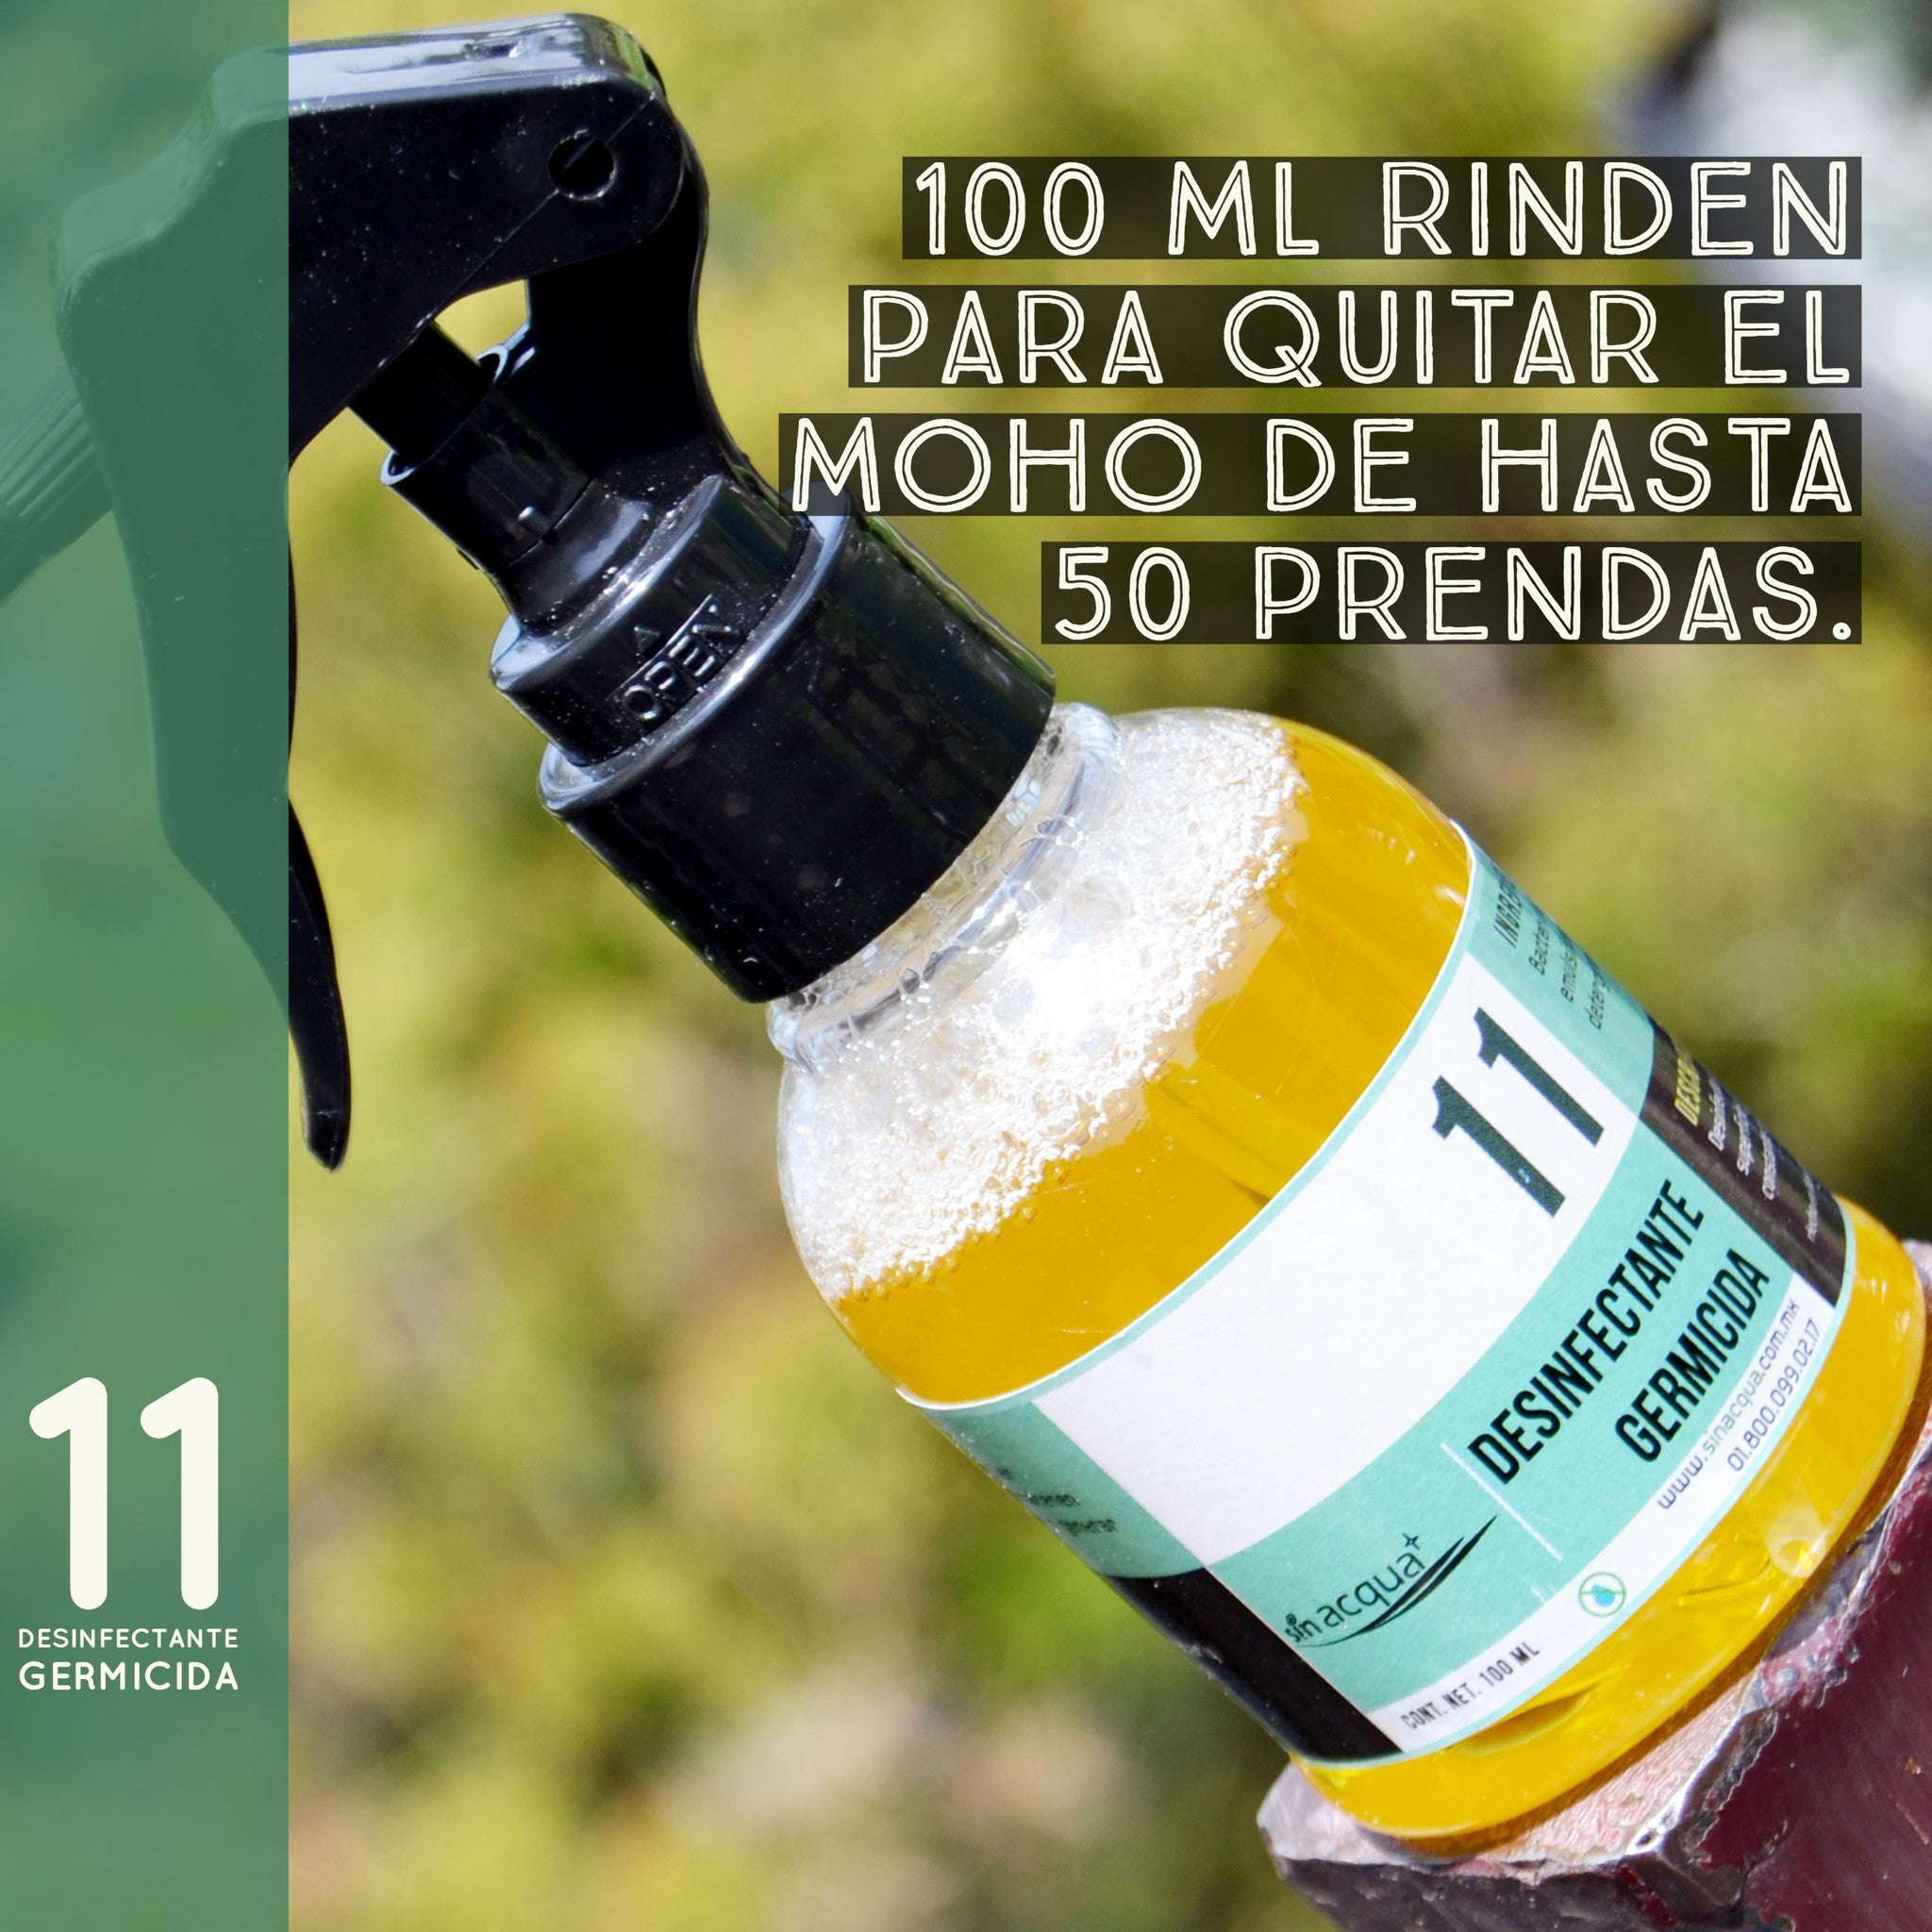 11 desinfectante germicida no la tires quita el moho - Como quitar moho ...